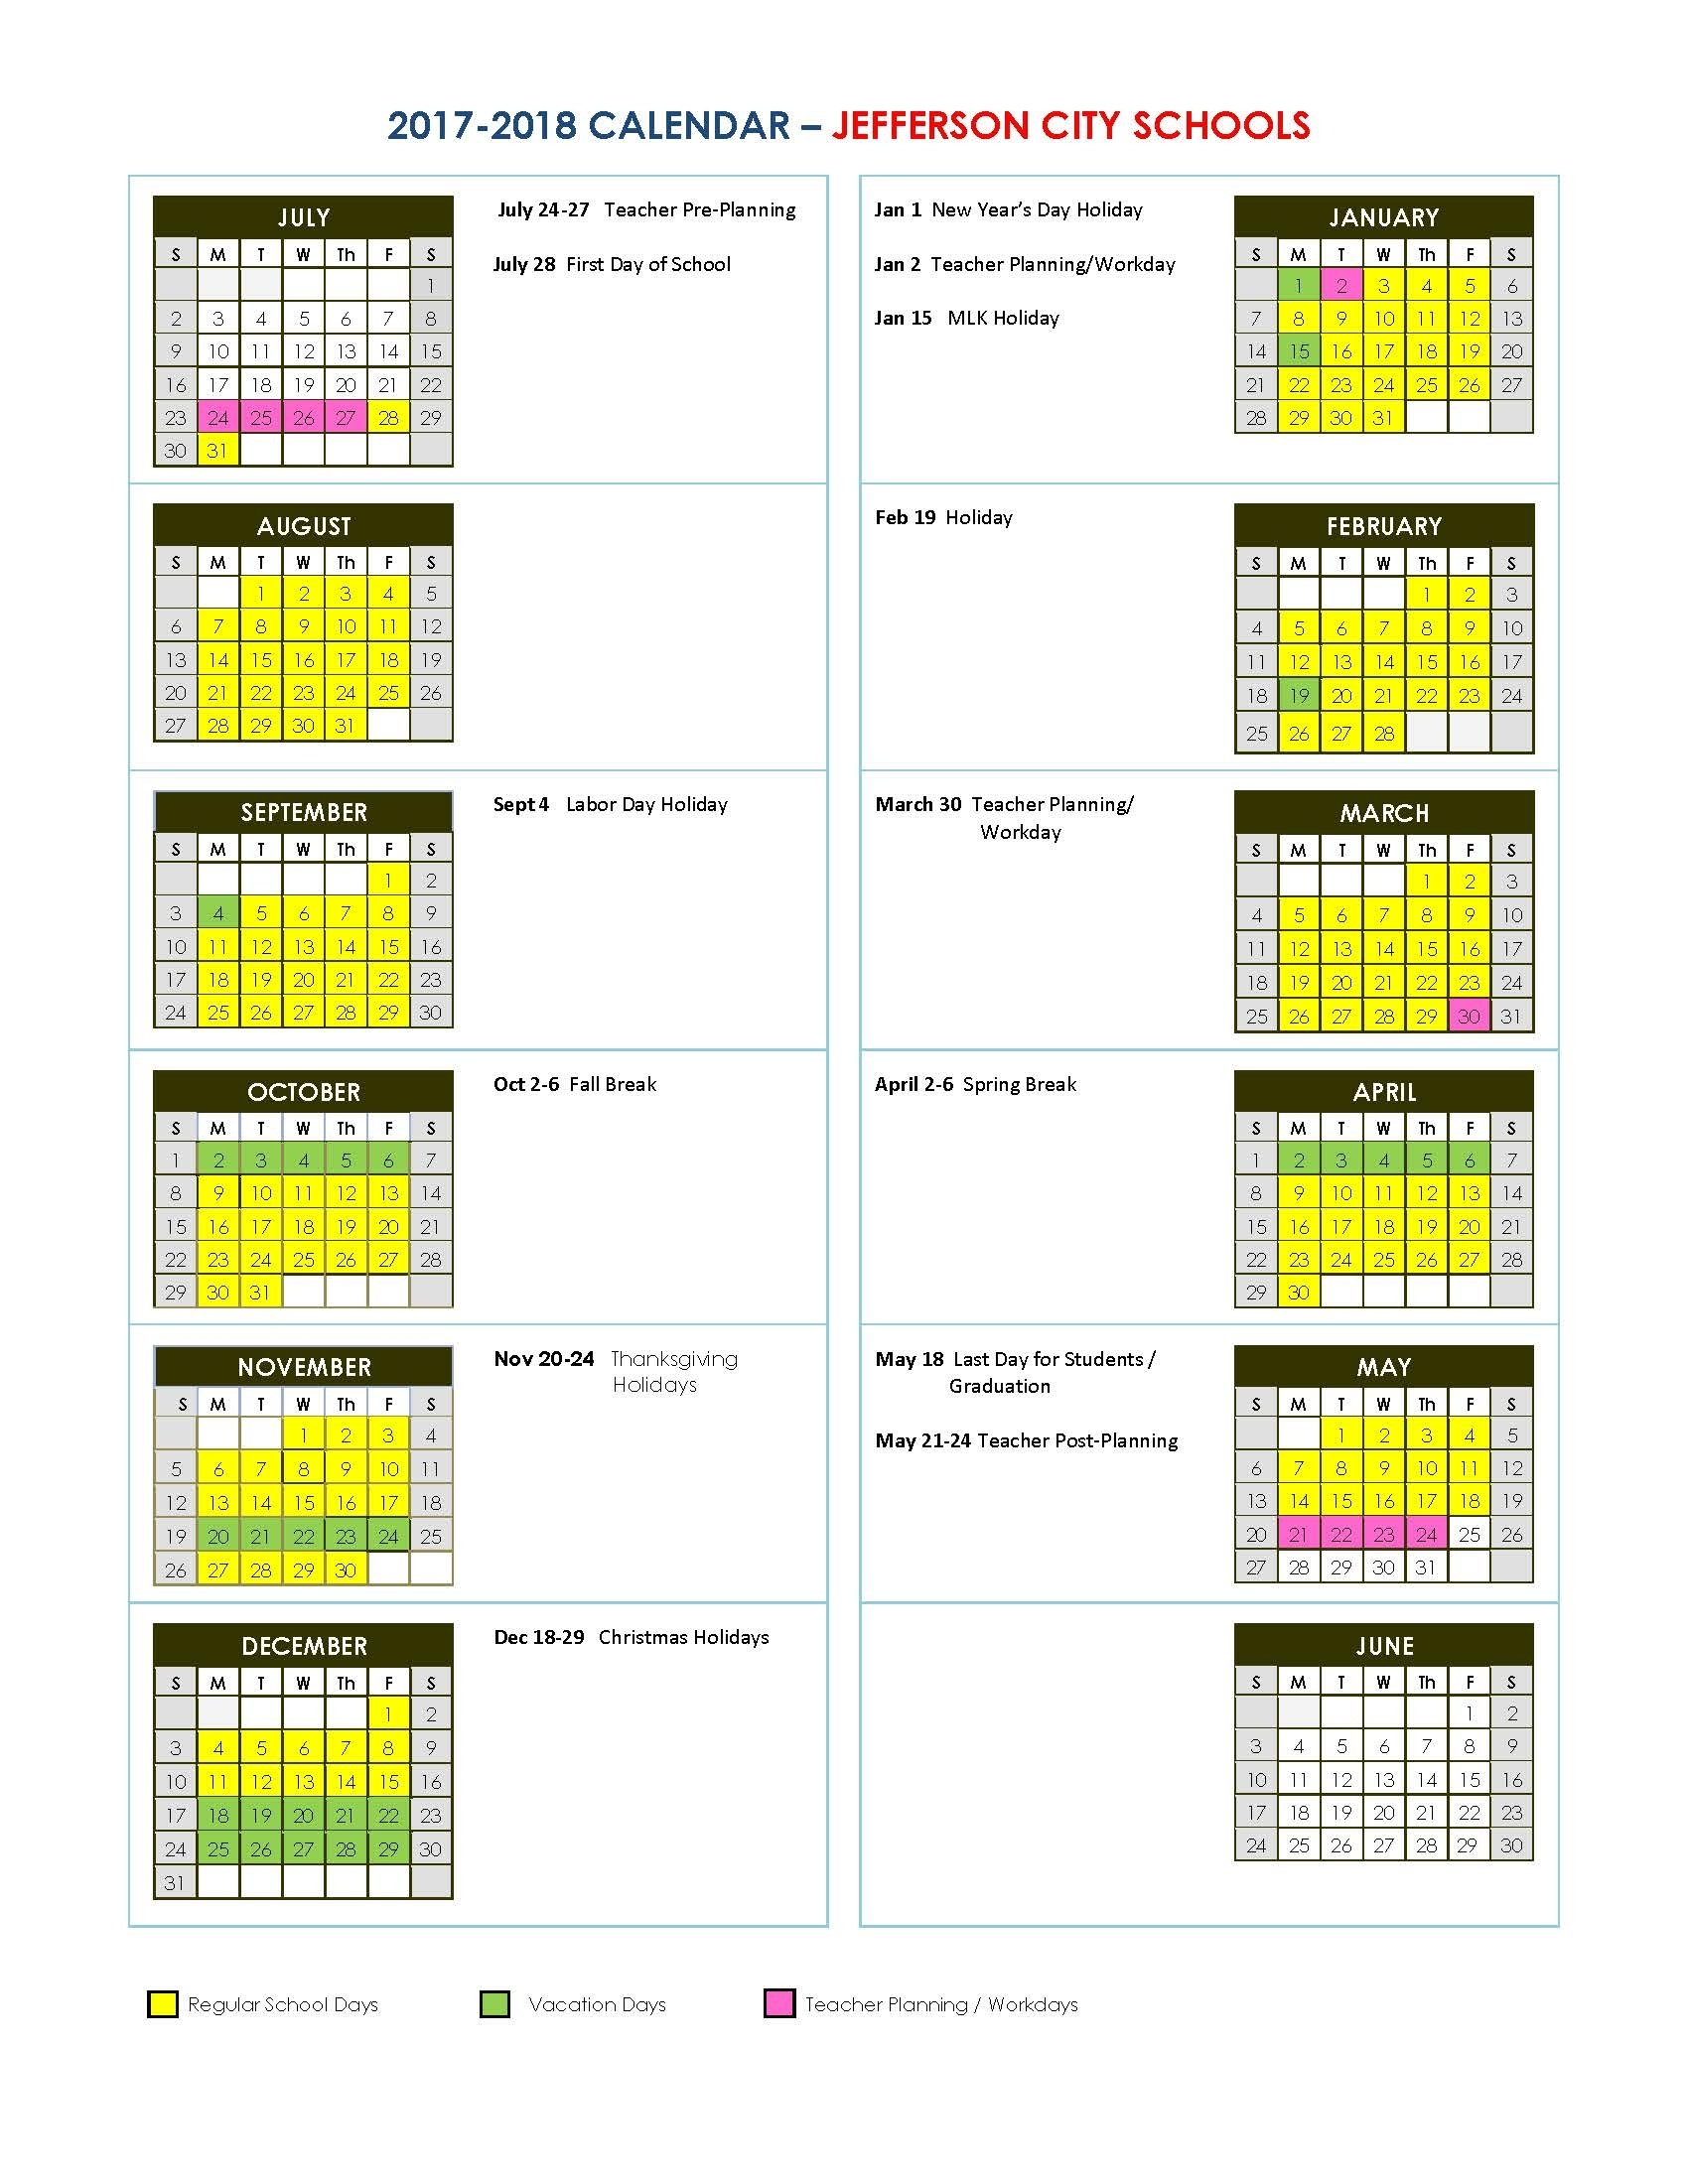 Jefferson City Schools for Uga 2019-2020 School Calendar